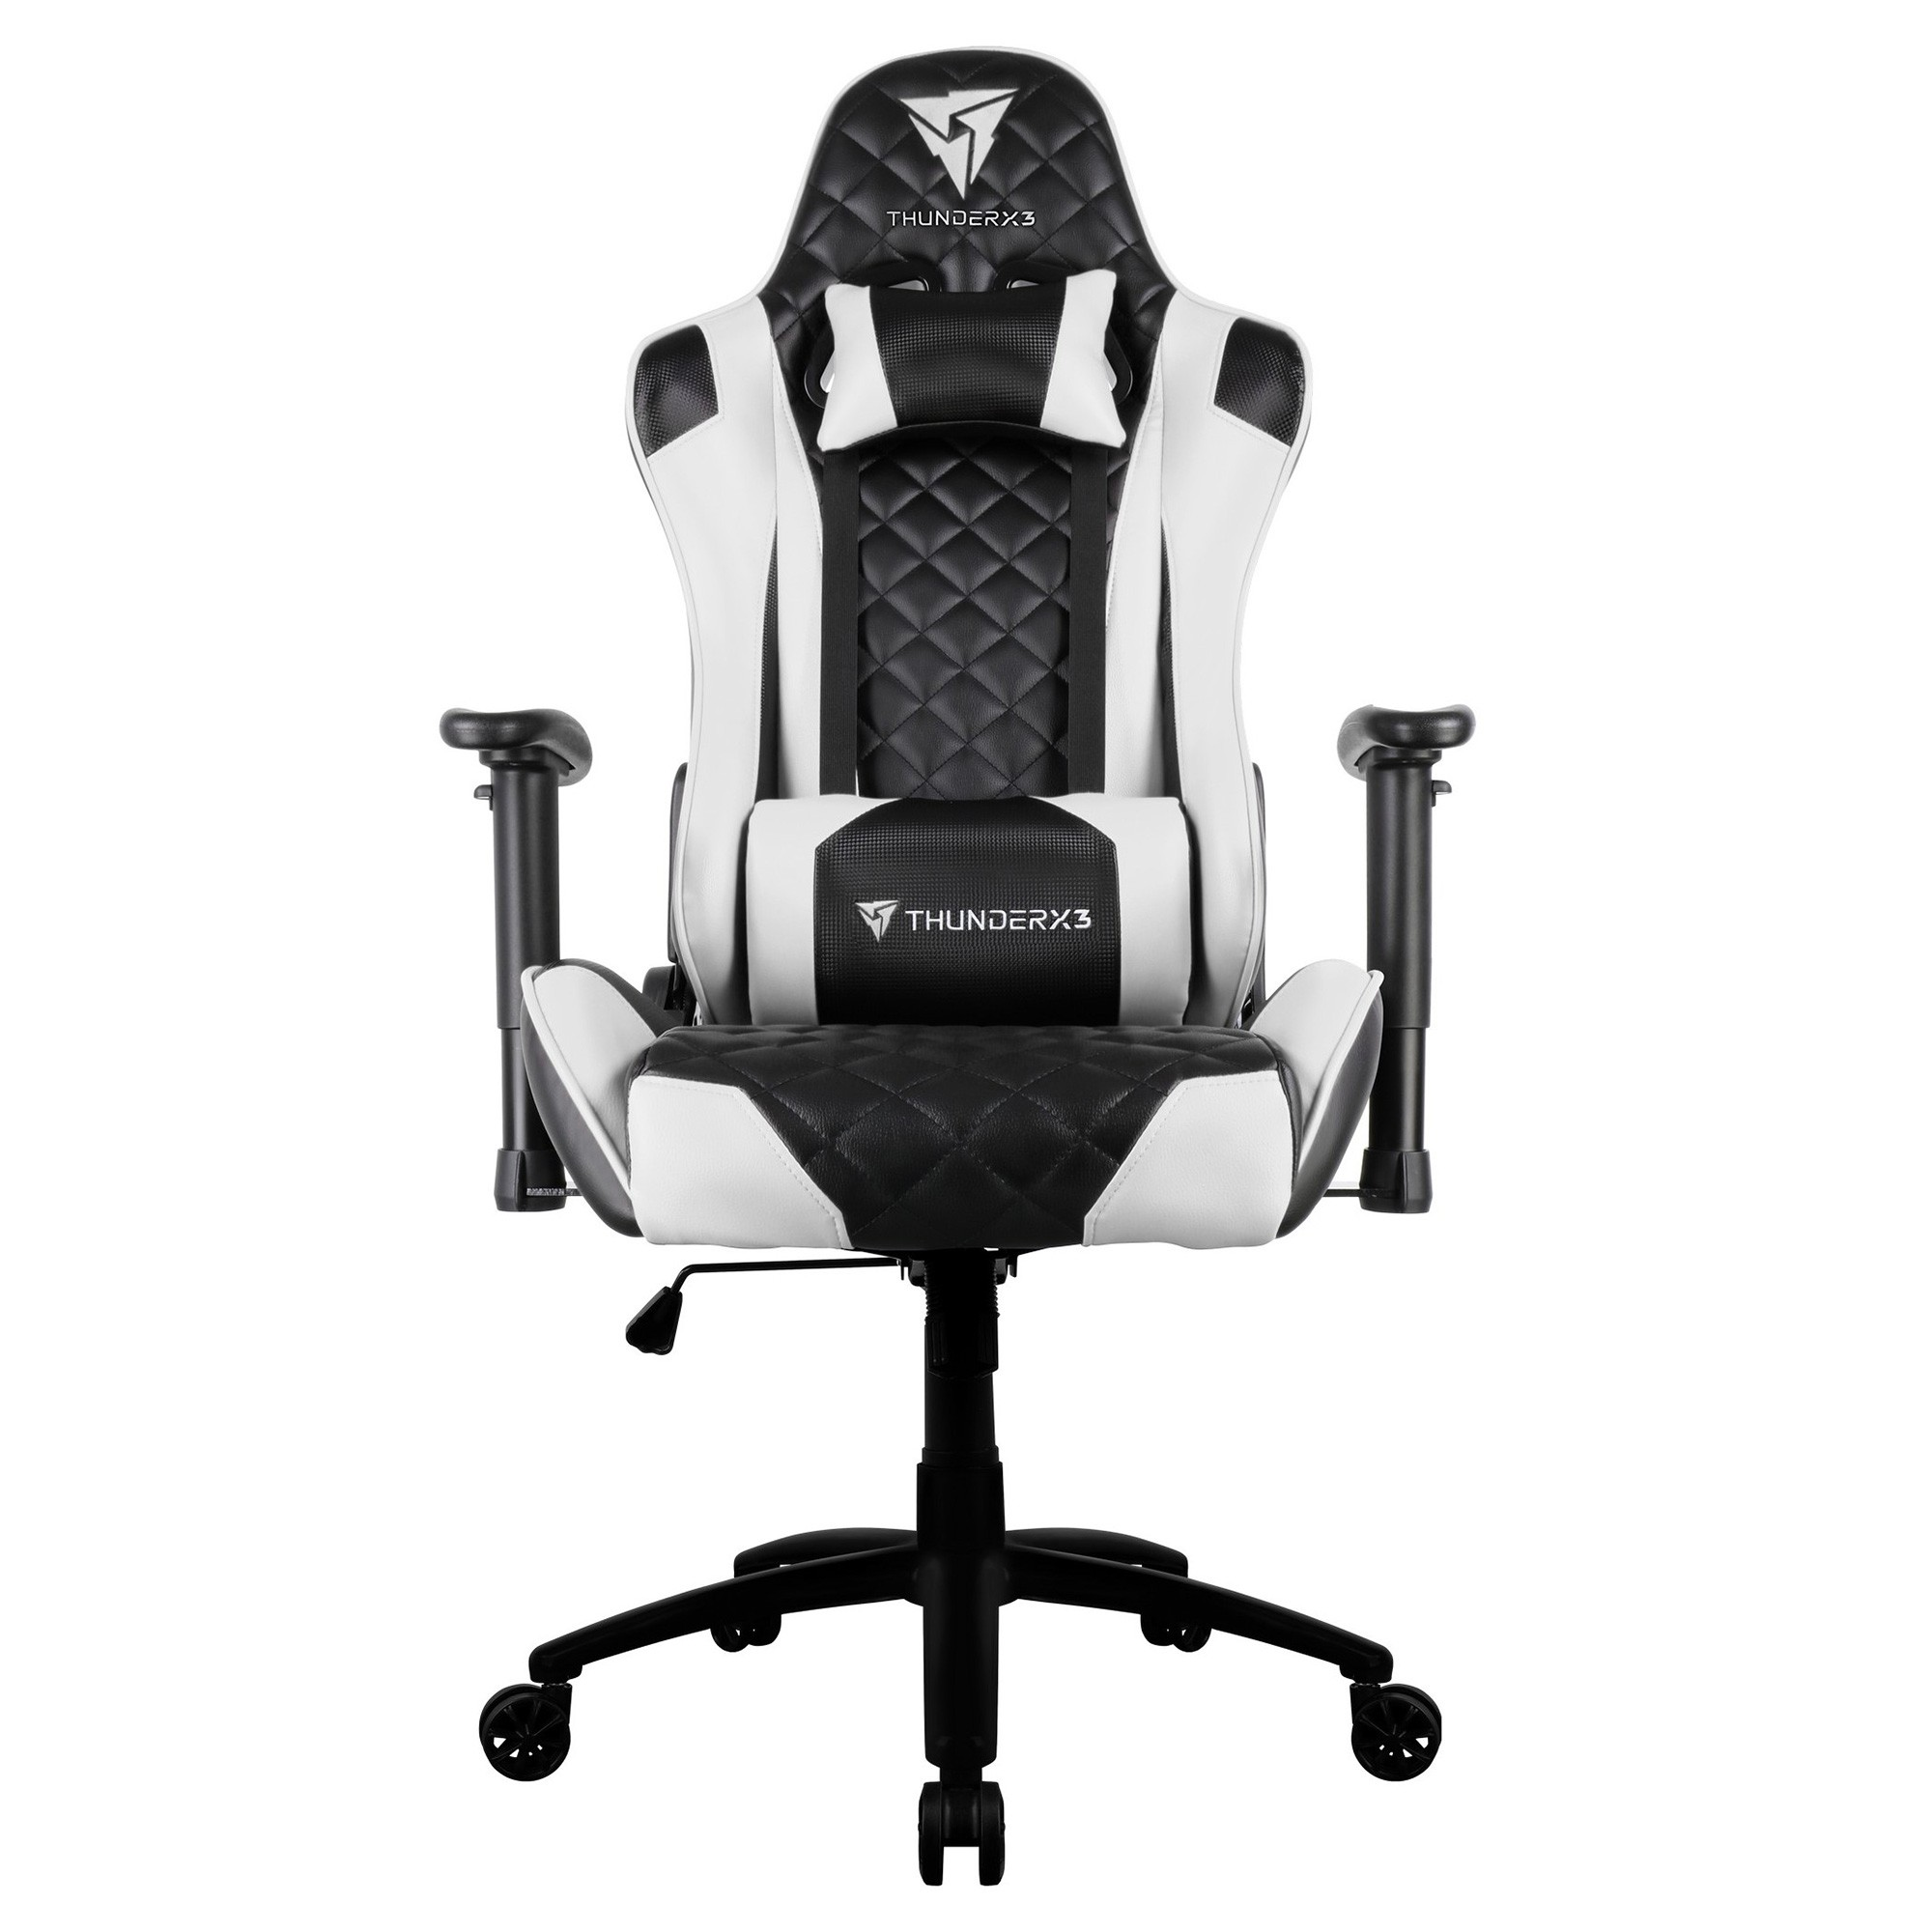 ThunderX3 TGC12 Gaming Chair, Black / White